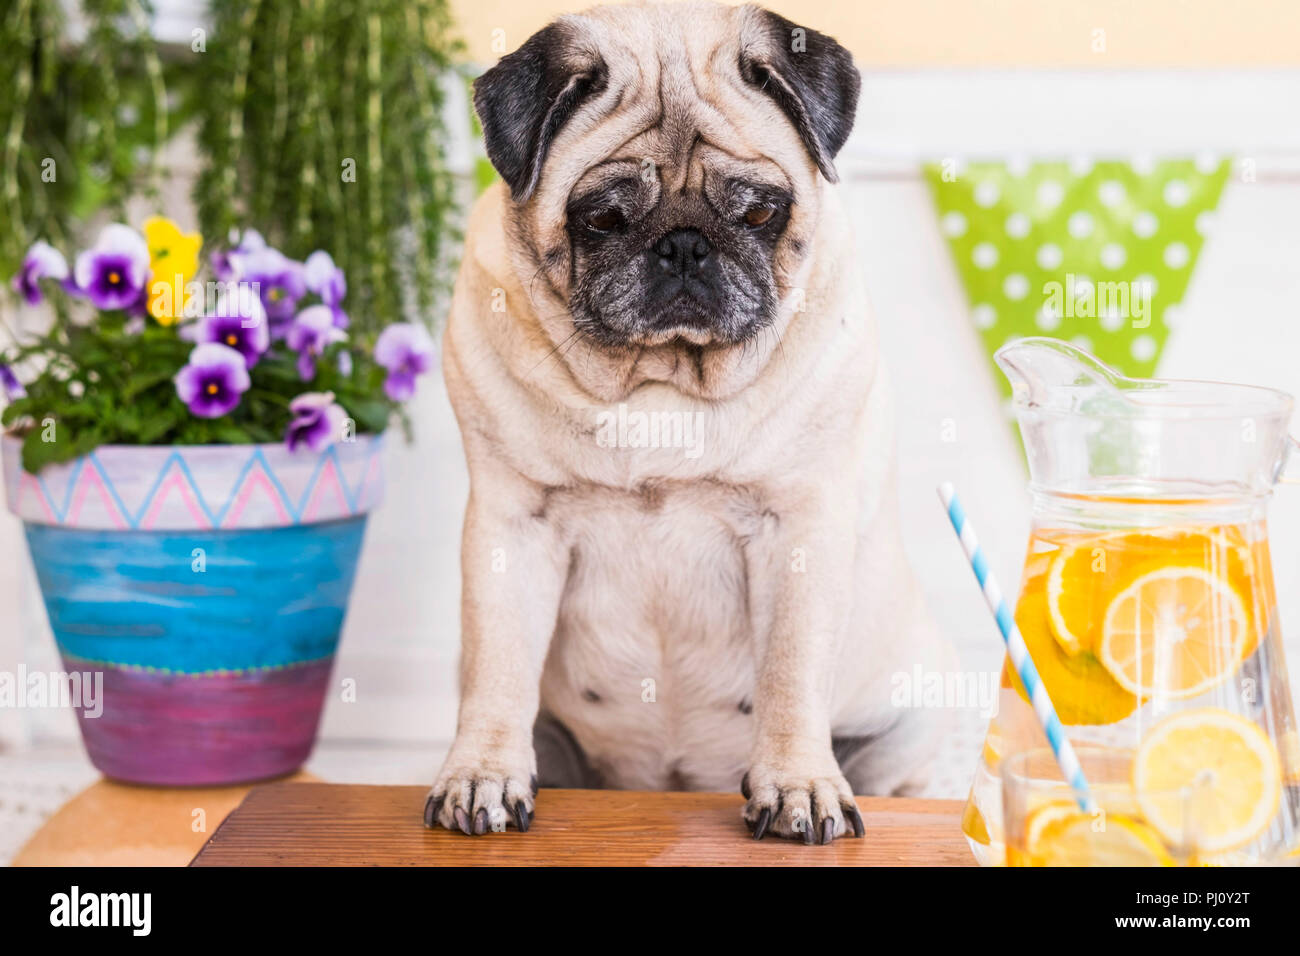 weight loss with diet concept. fat beautiful pretty pug dog sitting on a bench outdoor in terrace with water and lemon in front of him. healthy lifest - Stock Image